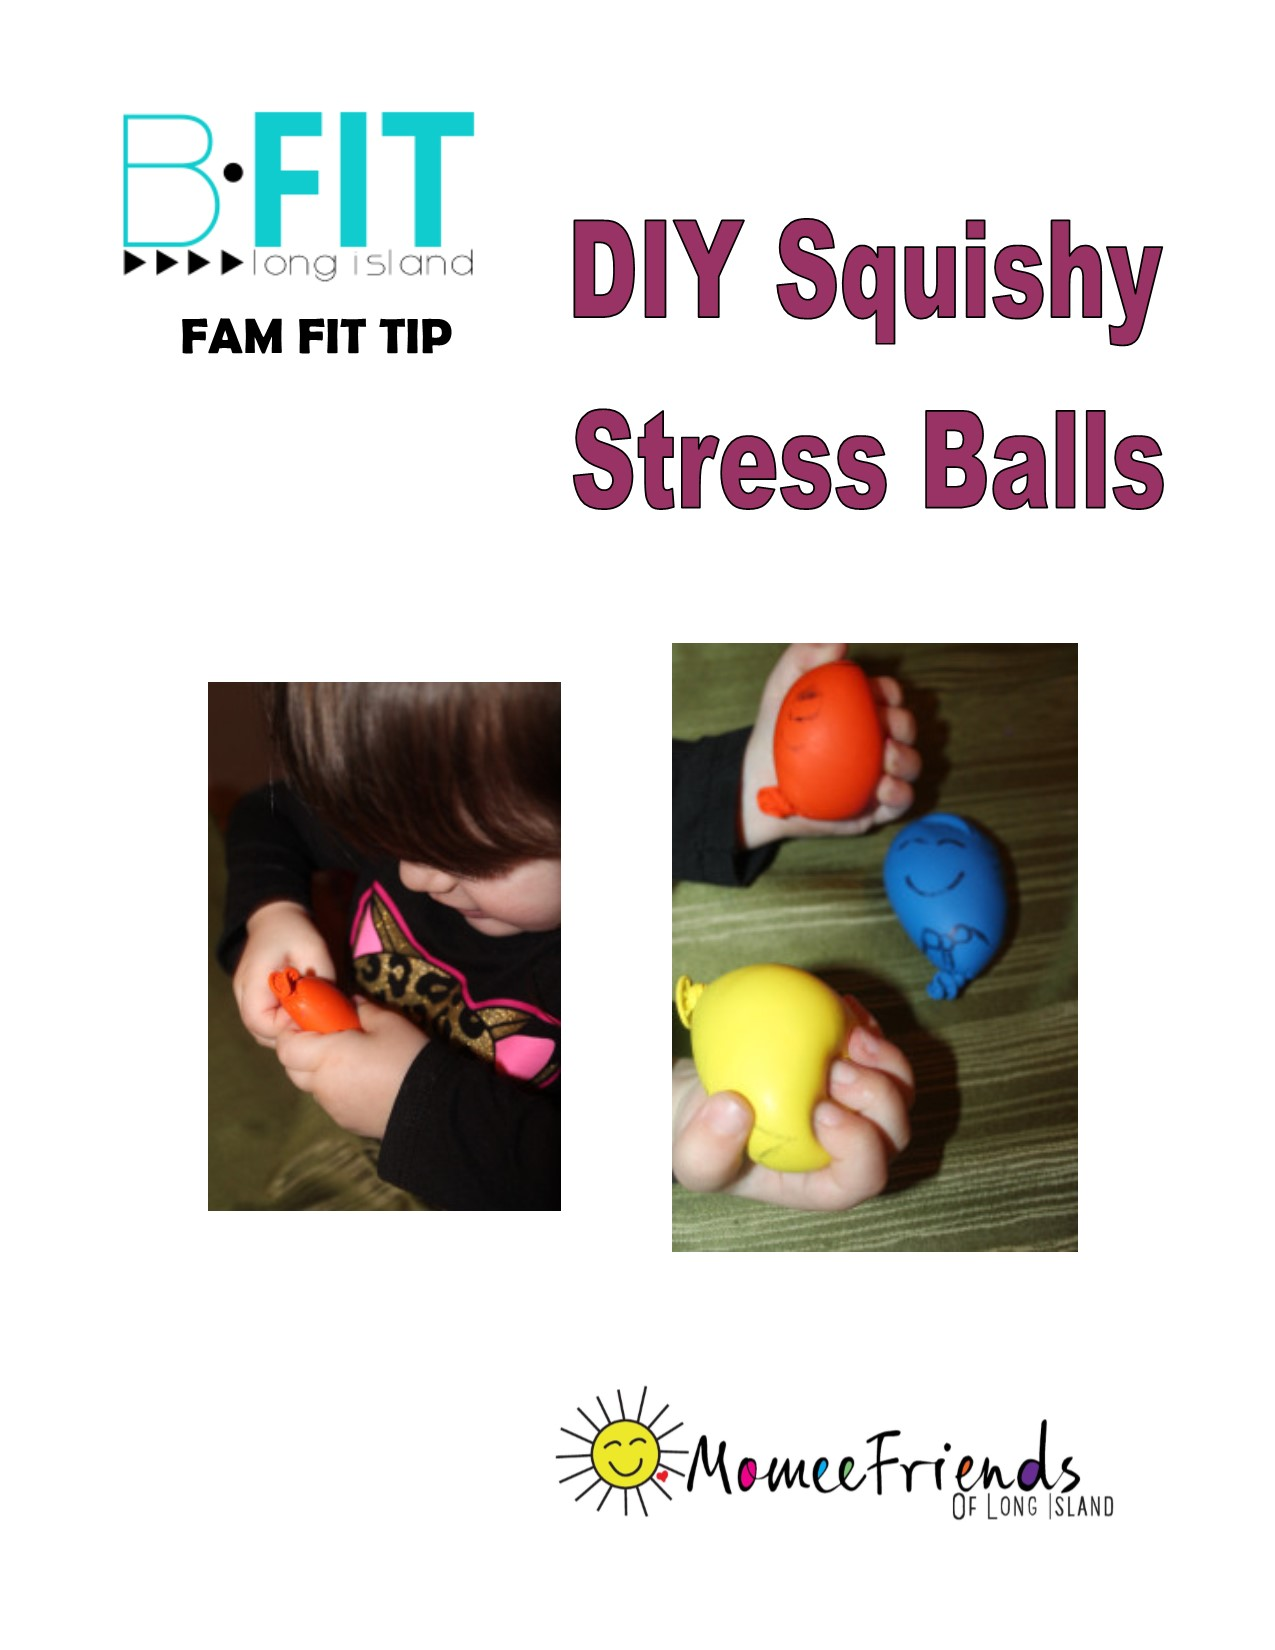 DIY Squishy Stress Balls momeefriendsli